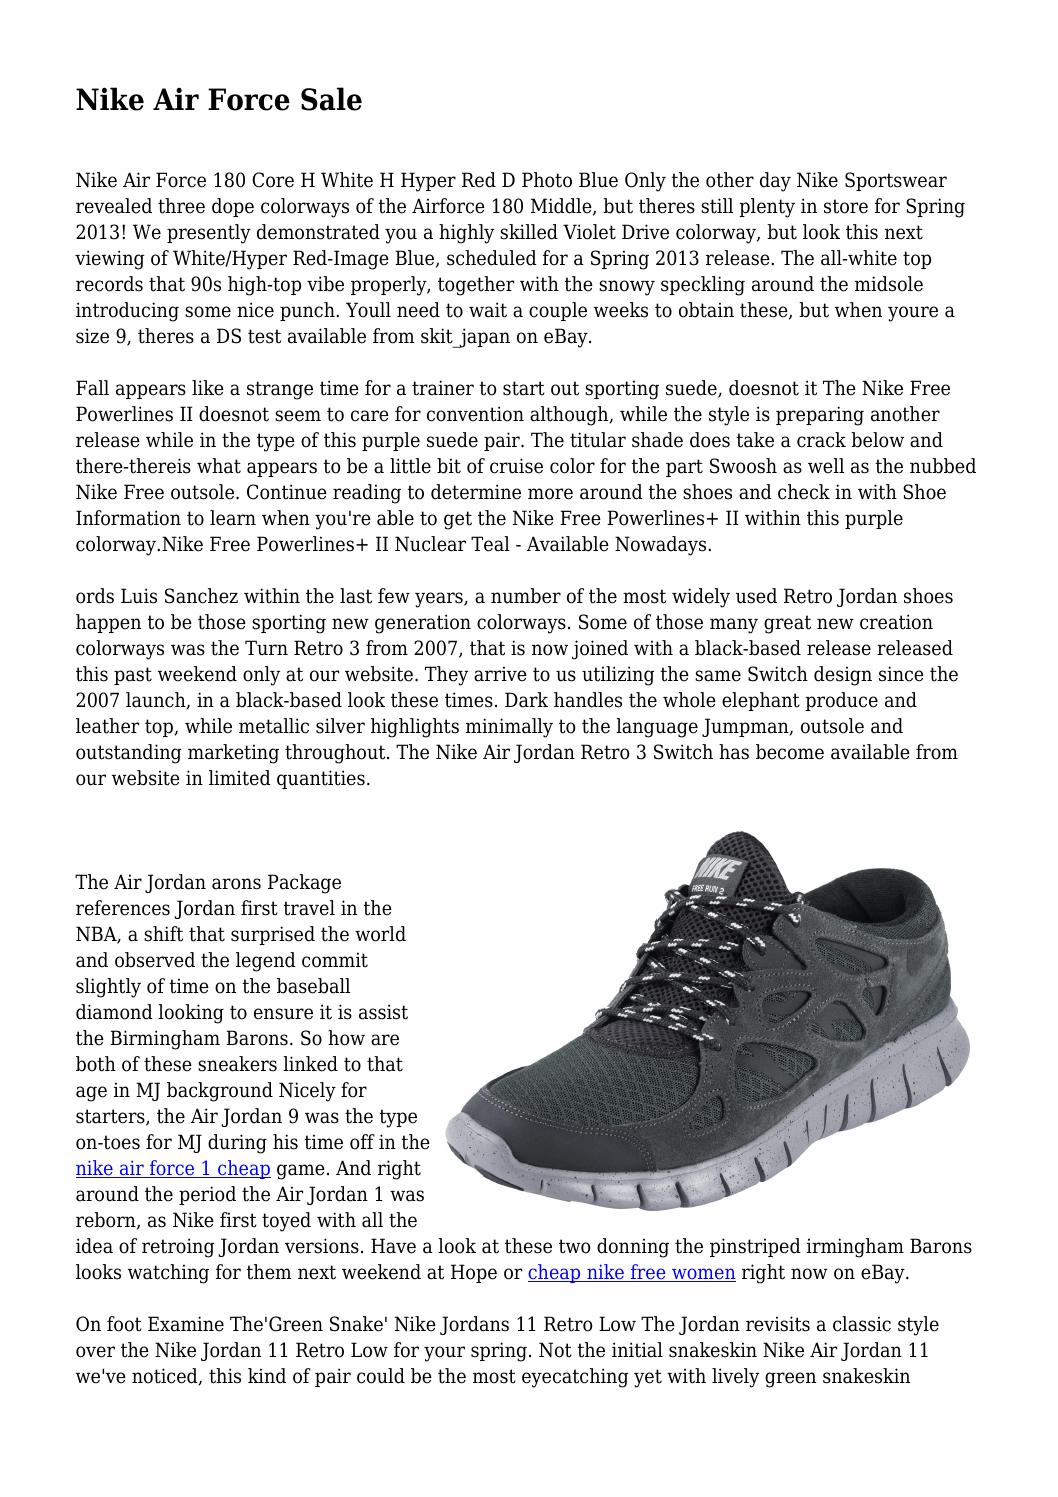 944a8e2666b Nike Air Force Sale by tanlexicon7779 - issuu